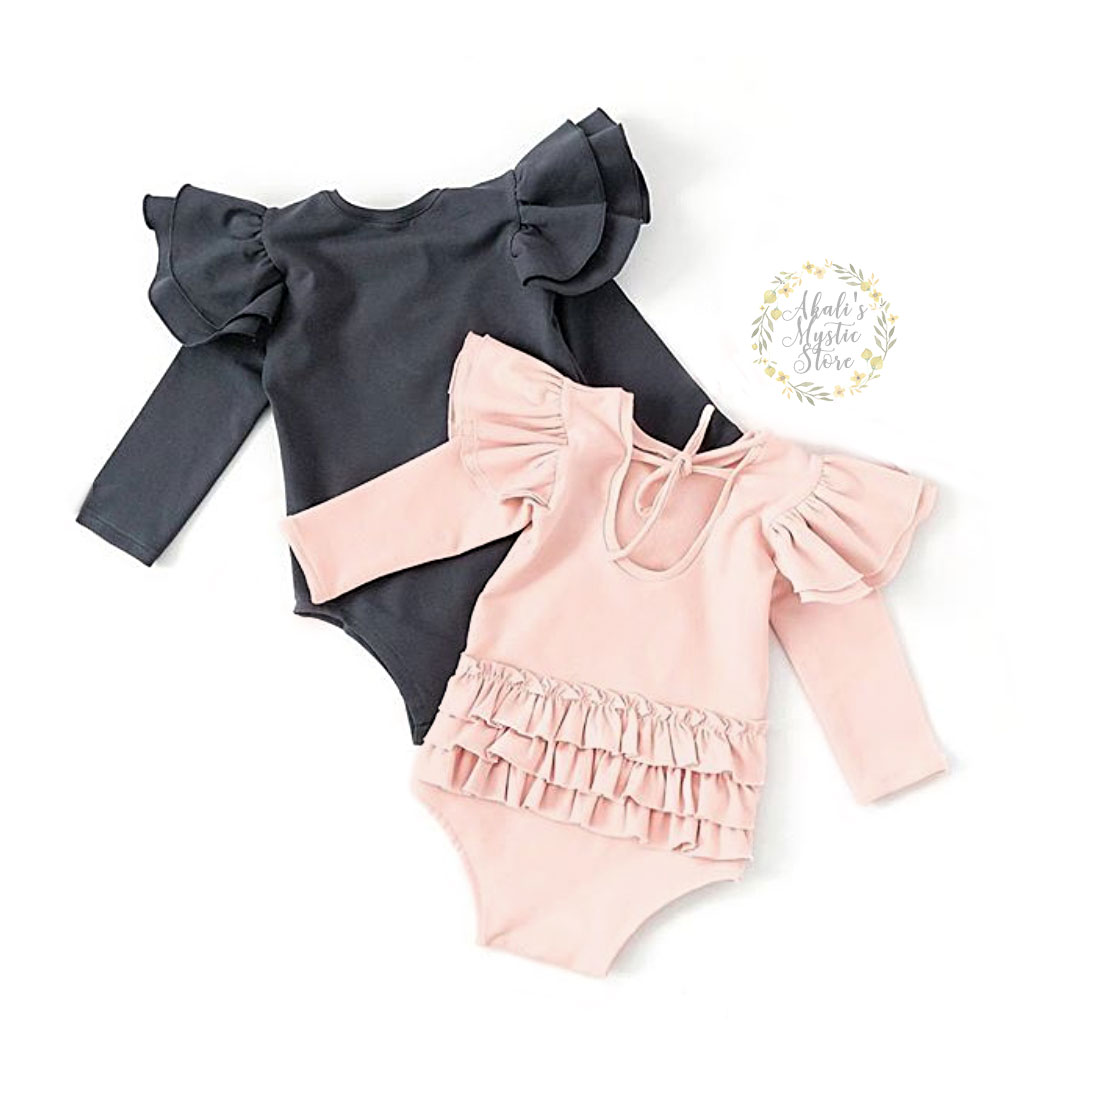 Rainbowhug Eagle Animals Man Unisex Baby Onesie Lovely Newborn Clothes Unique Baby Outfits Soft Baby Clothes